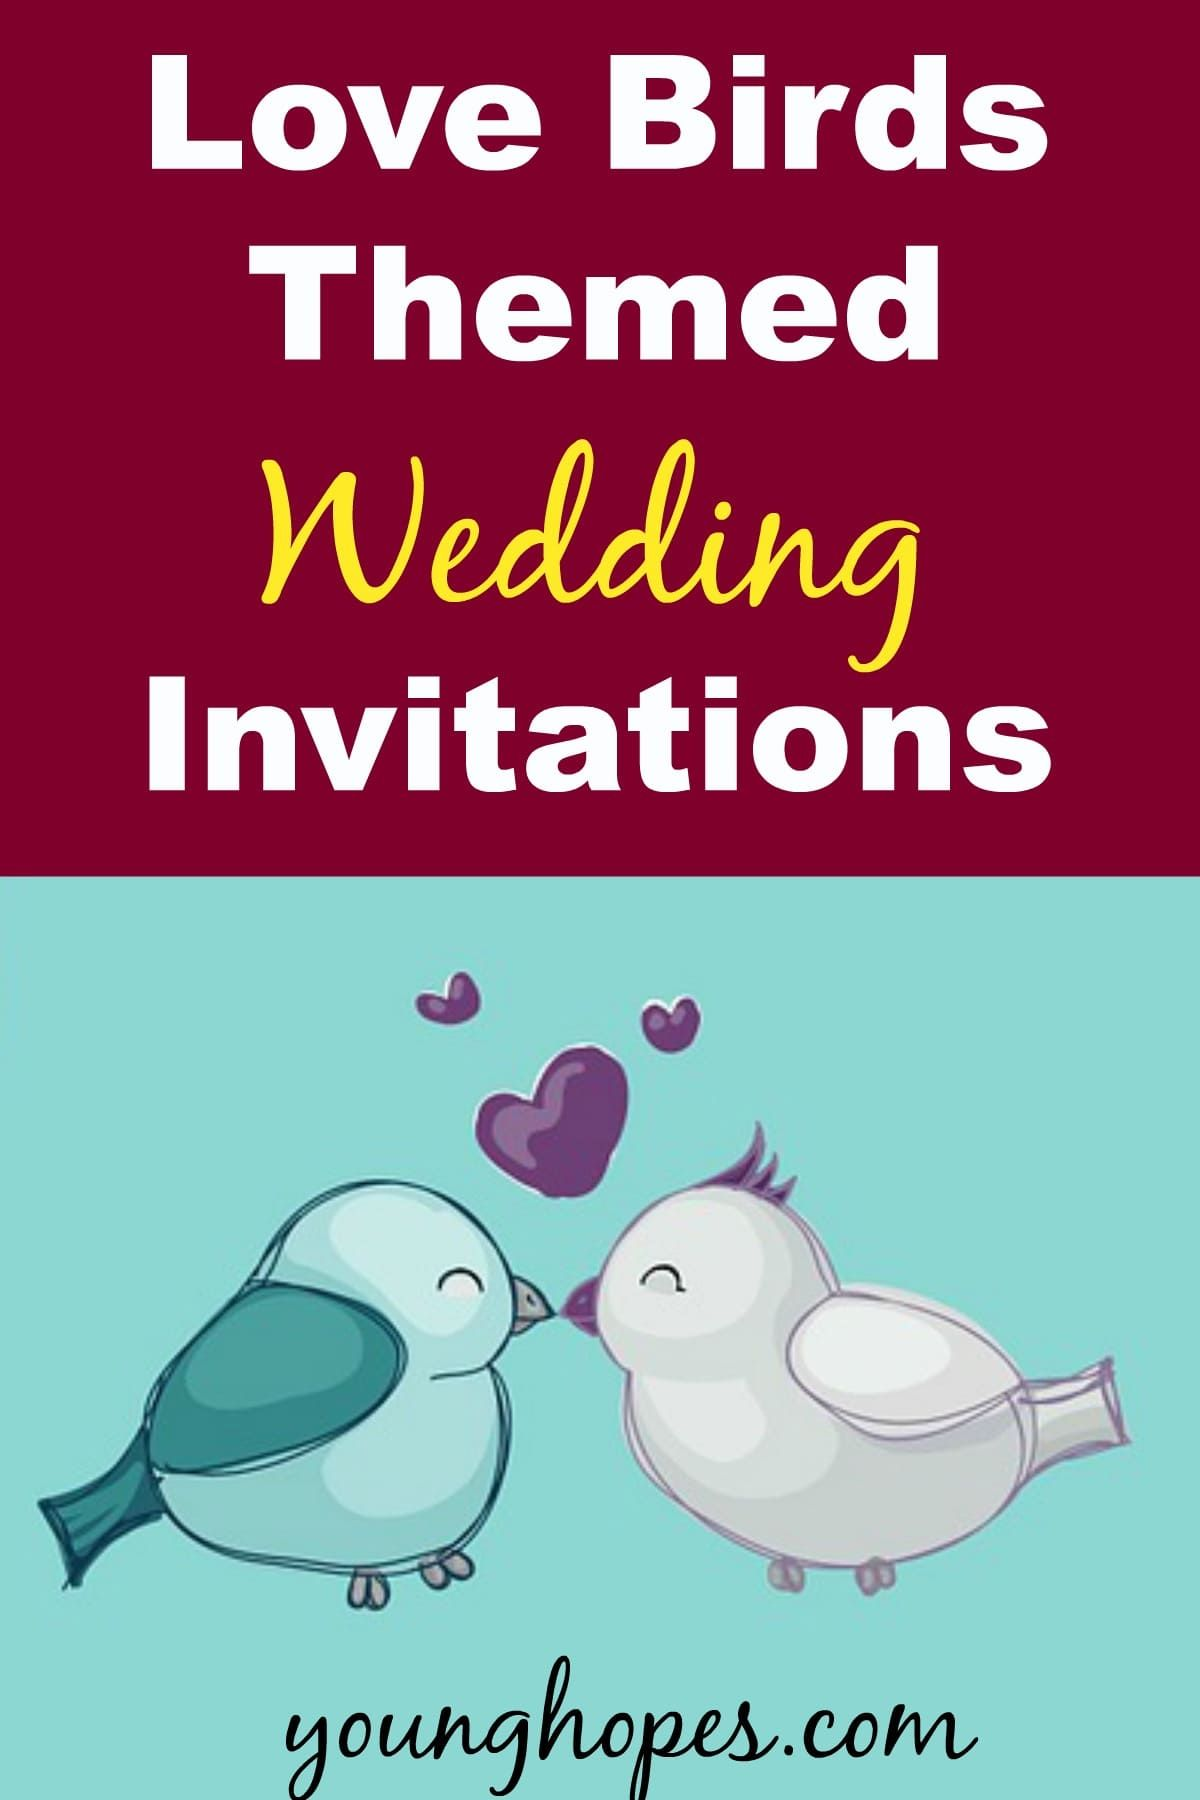 Unique Love Birds Themed Wedding Invitations • | Themed weddings and ...